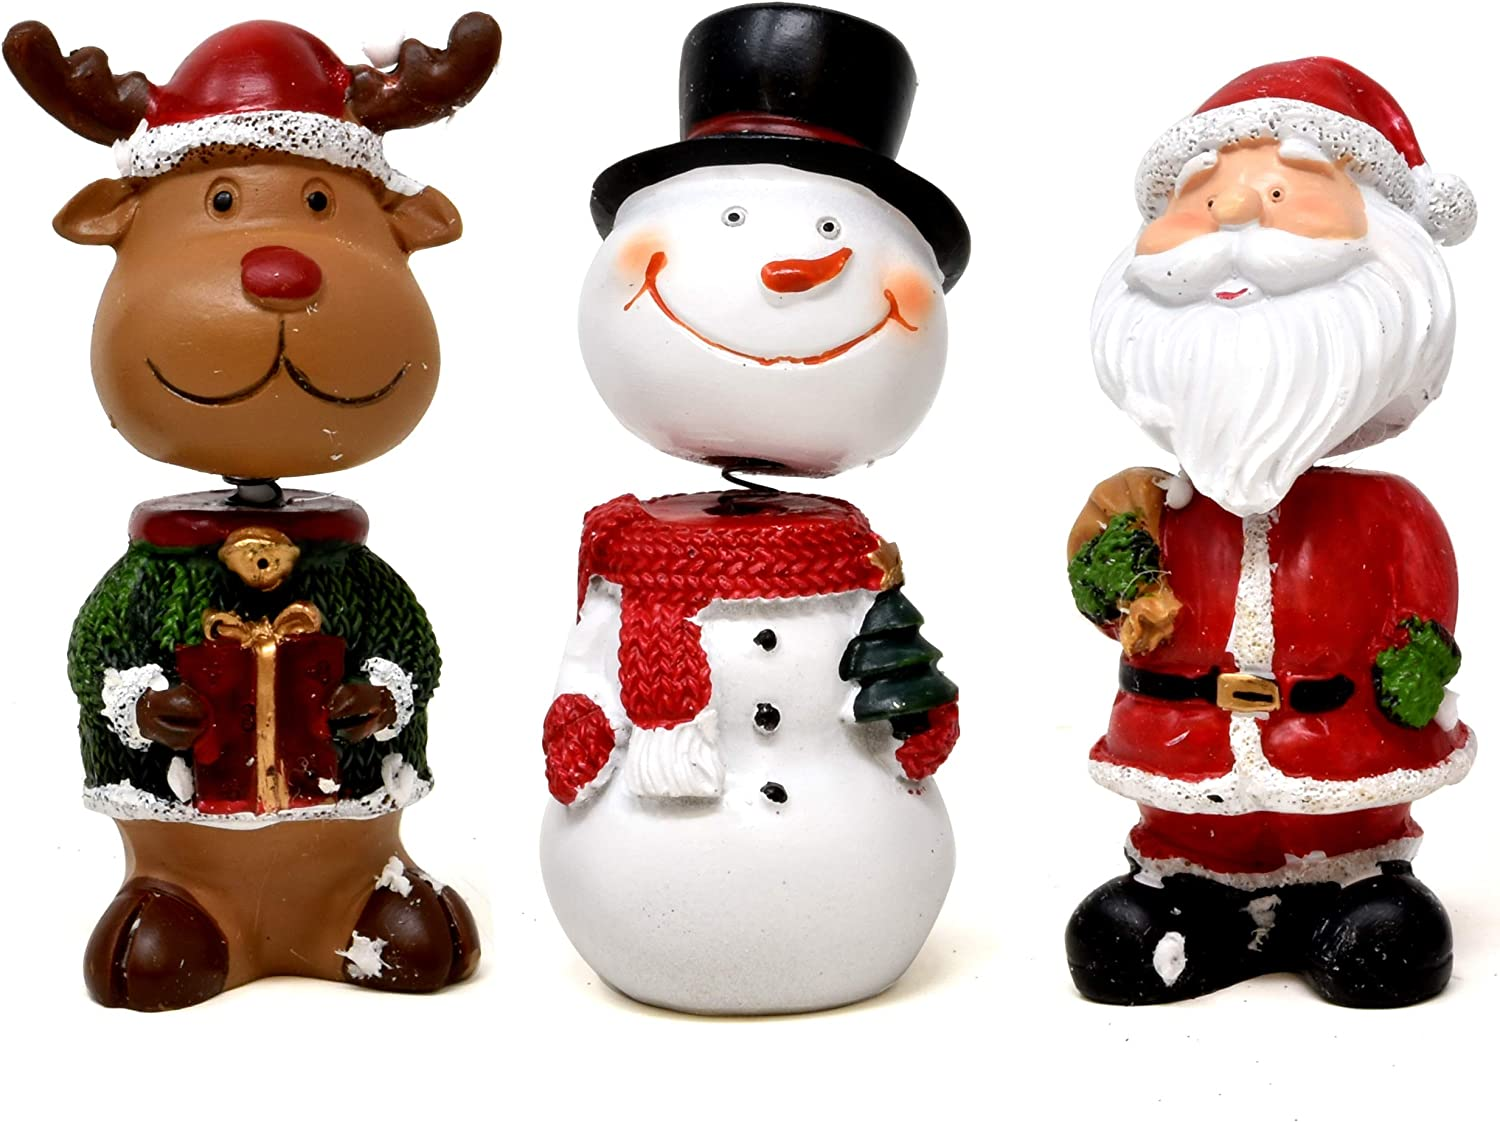 Gift Boutique 3 Christmas Bobble Head Table Topper Characters Snowman Santa Reindeer Figurines Decor Holiday Sculpture Table Top Decorative Centerpiece for Home Kitchen Office Desk Party Decorations